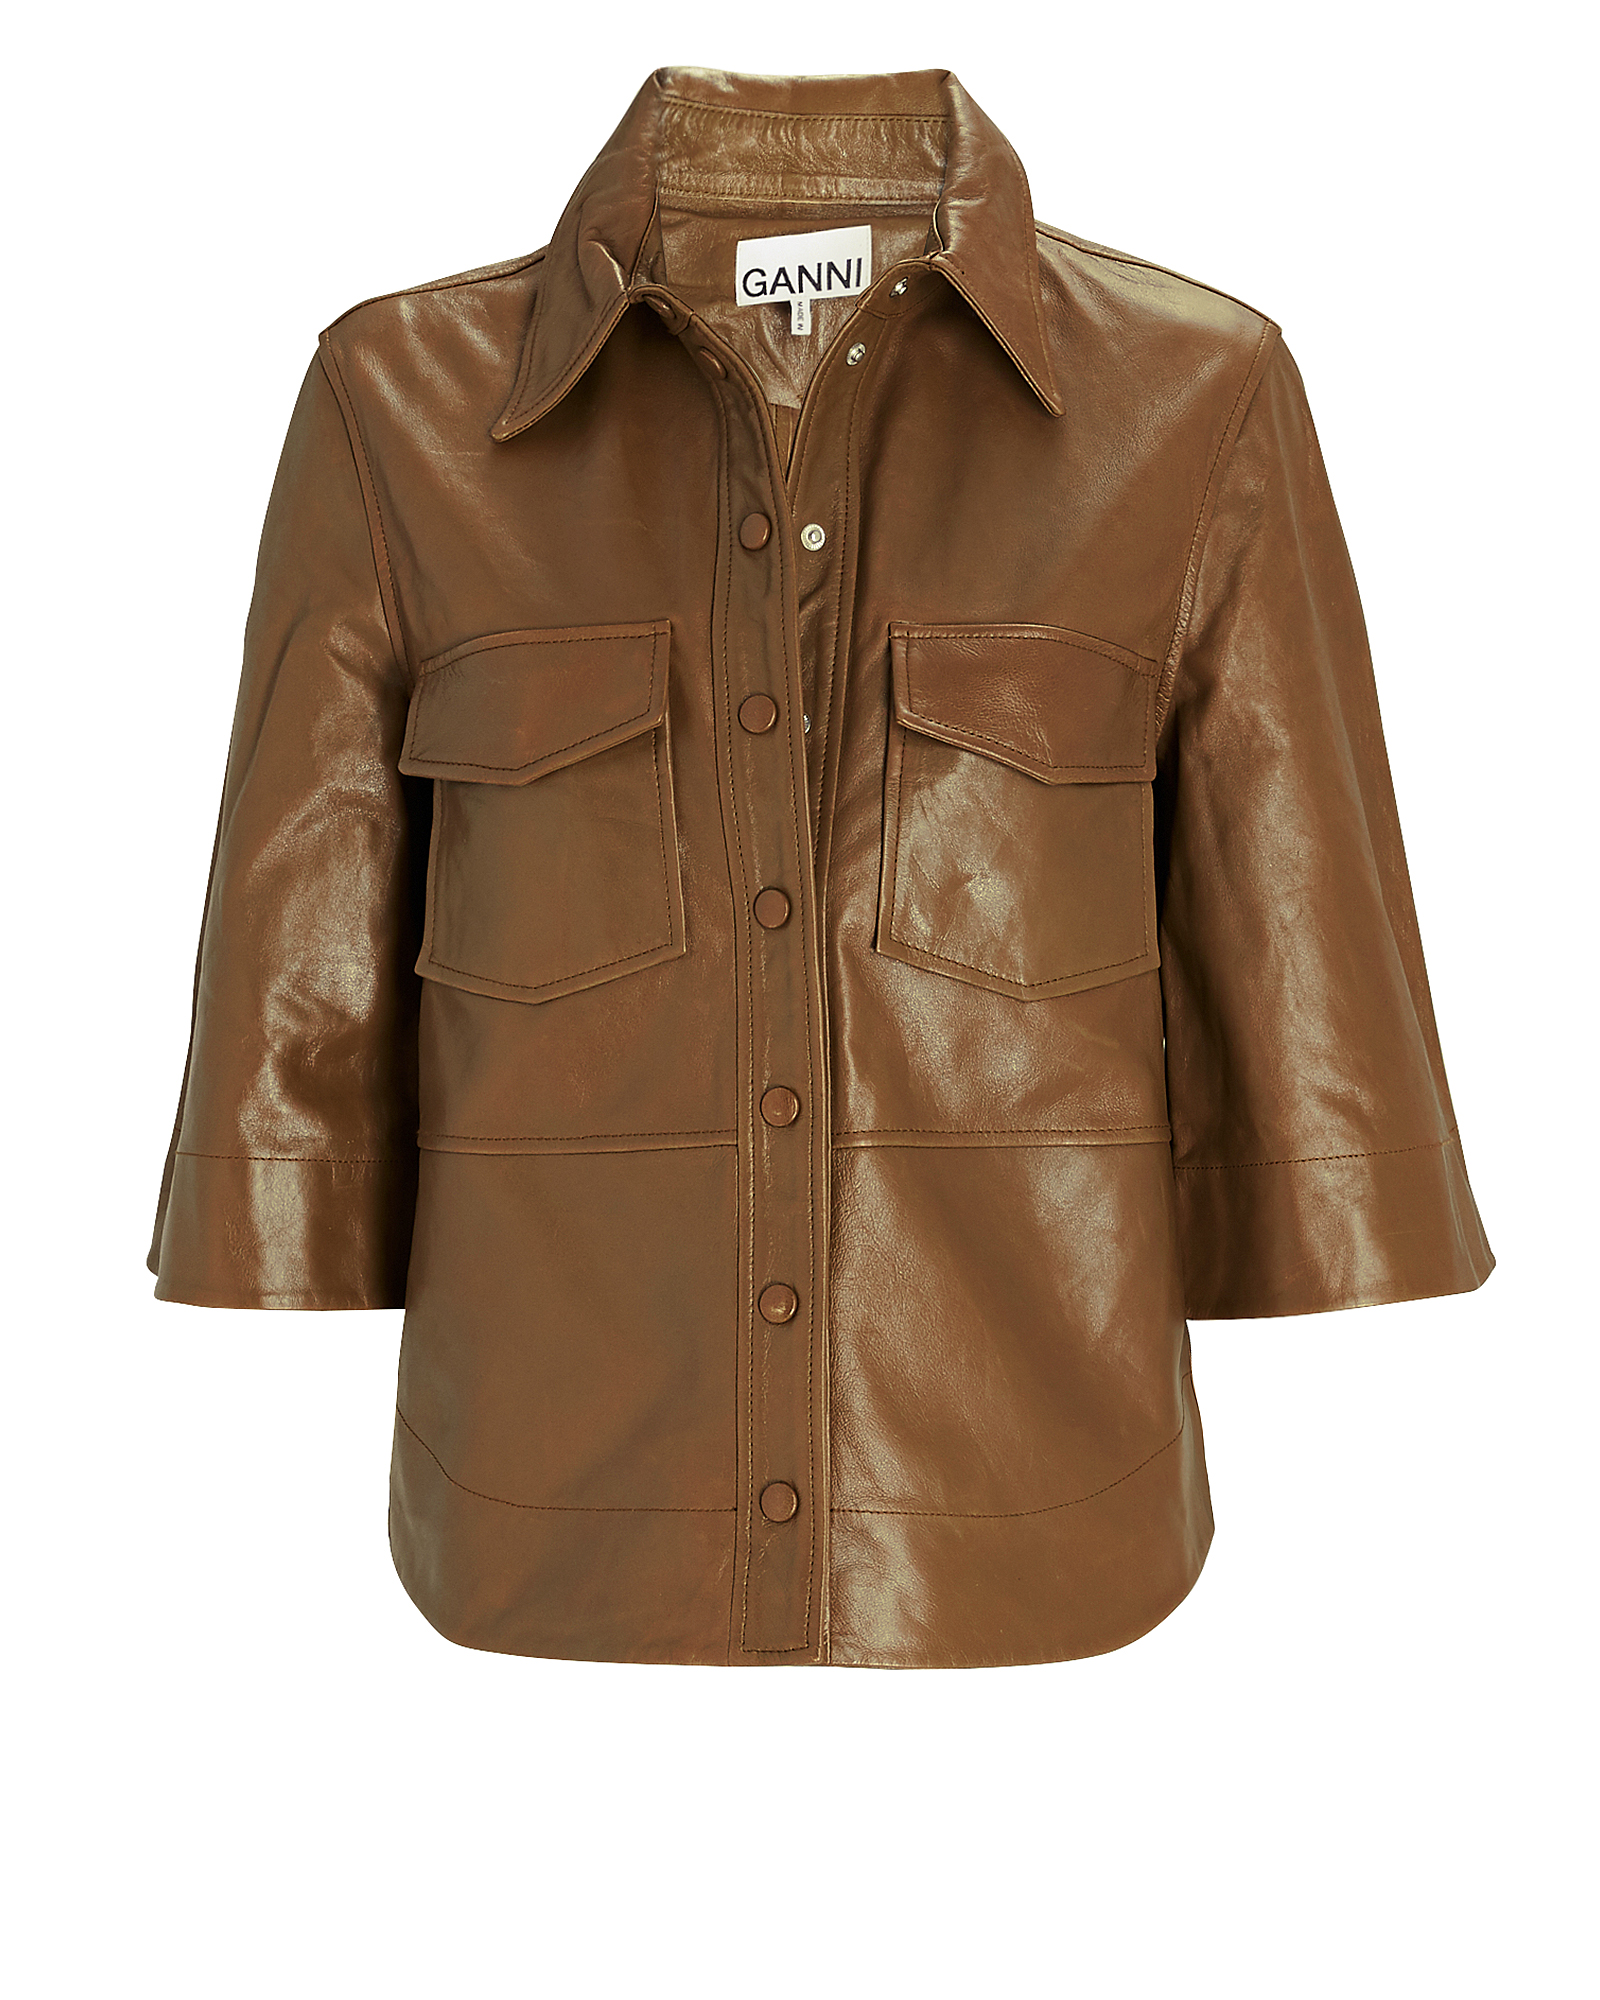 Ganni Leathers Leather Button-Down Shirt